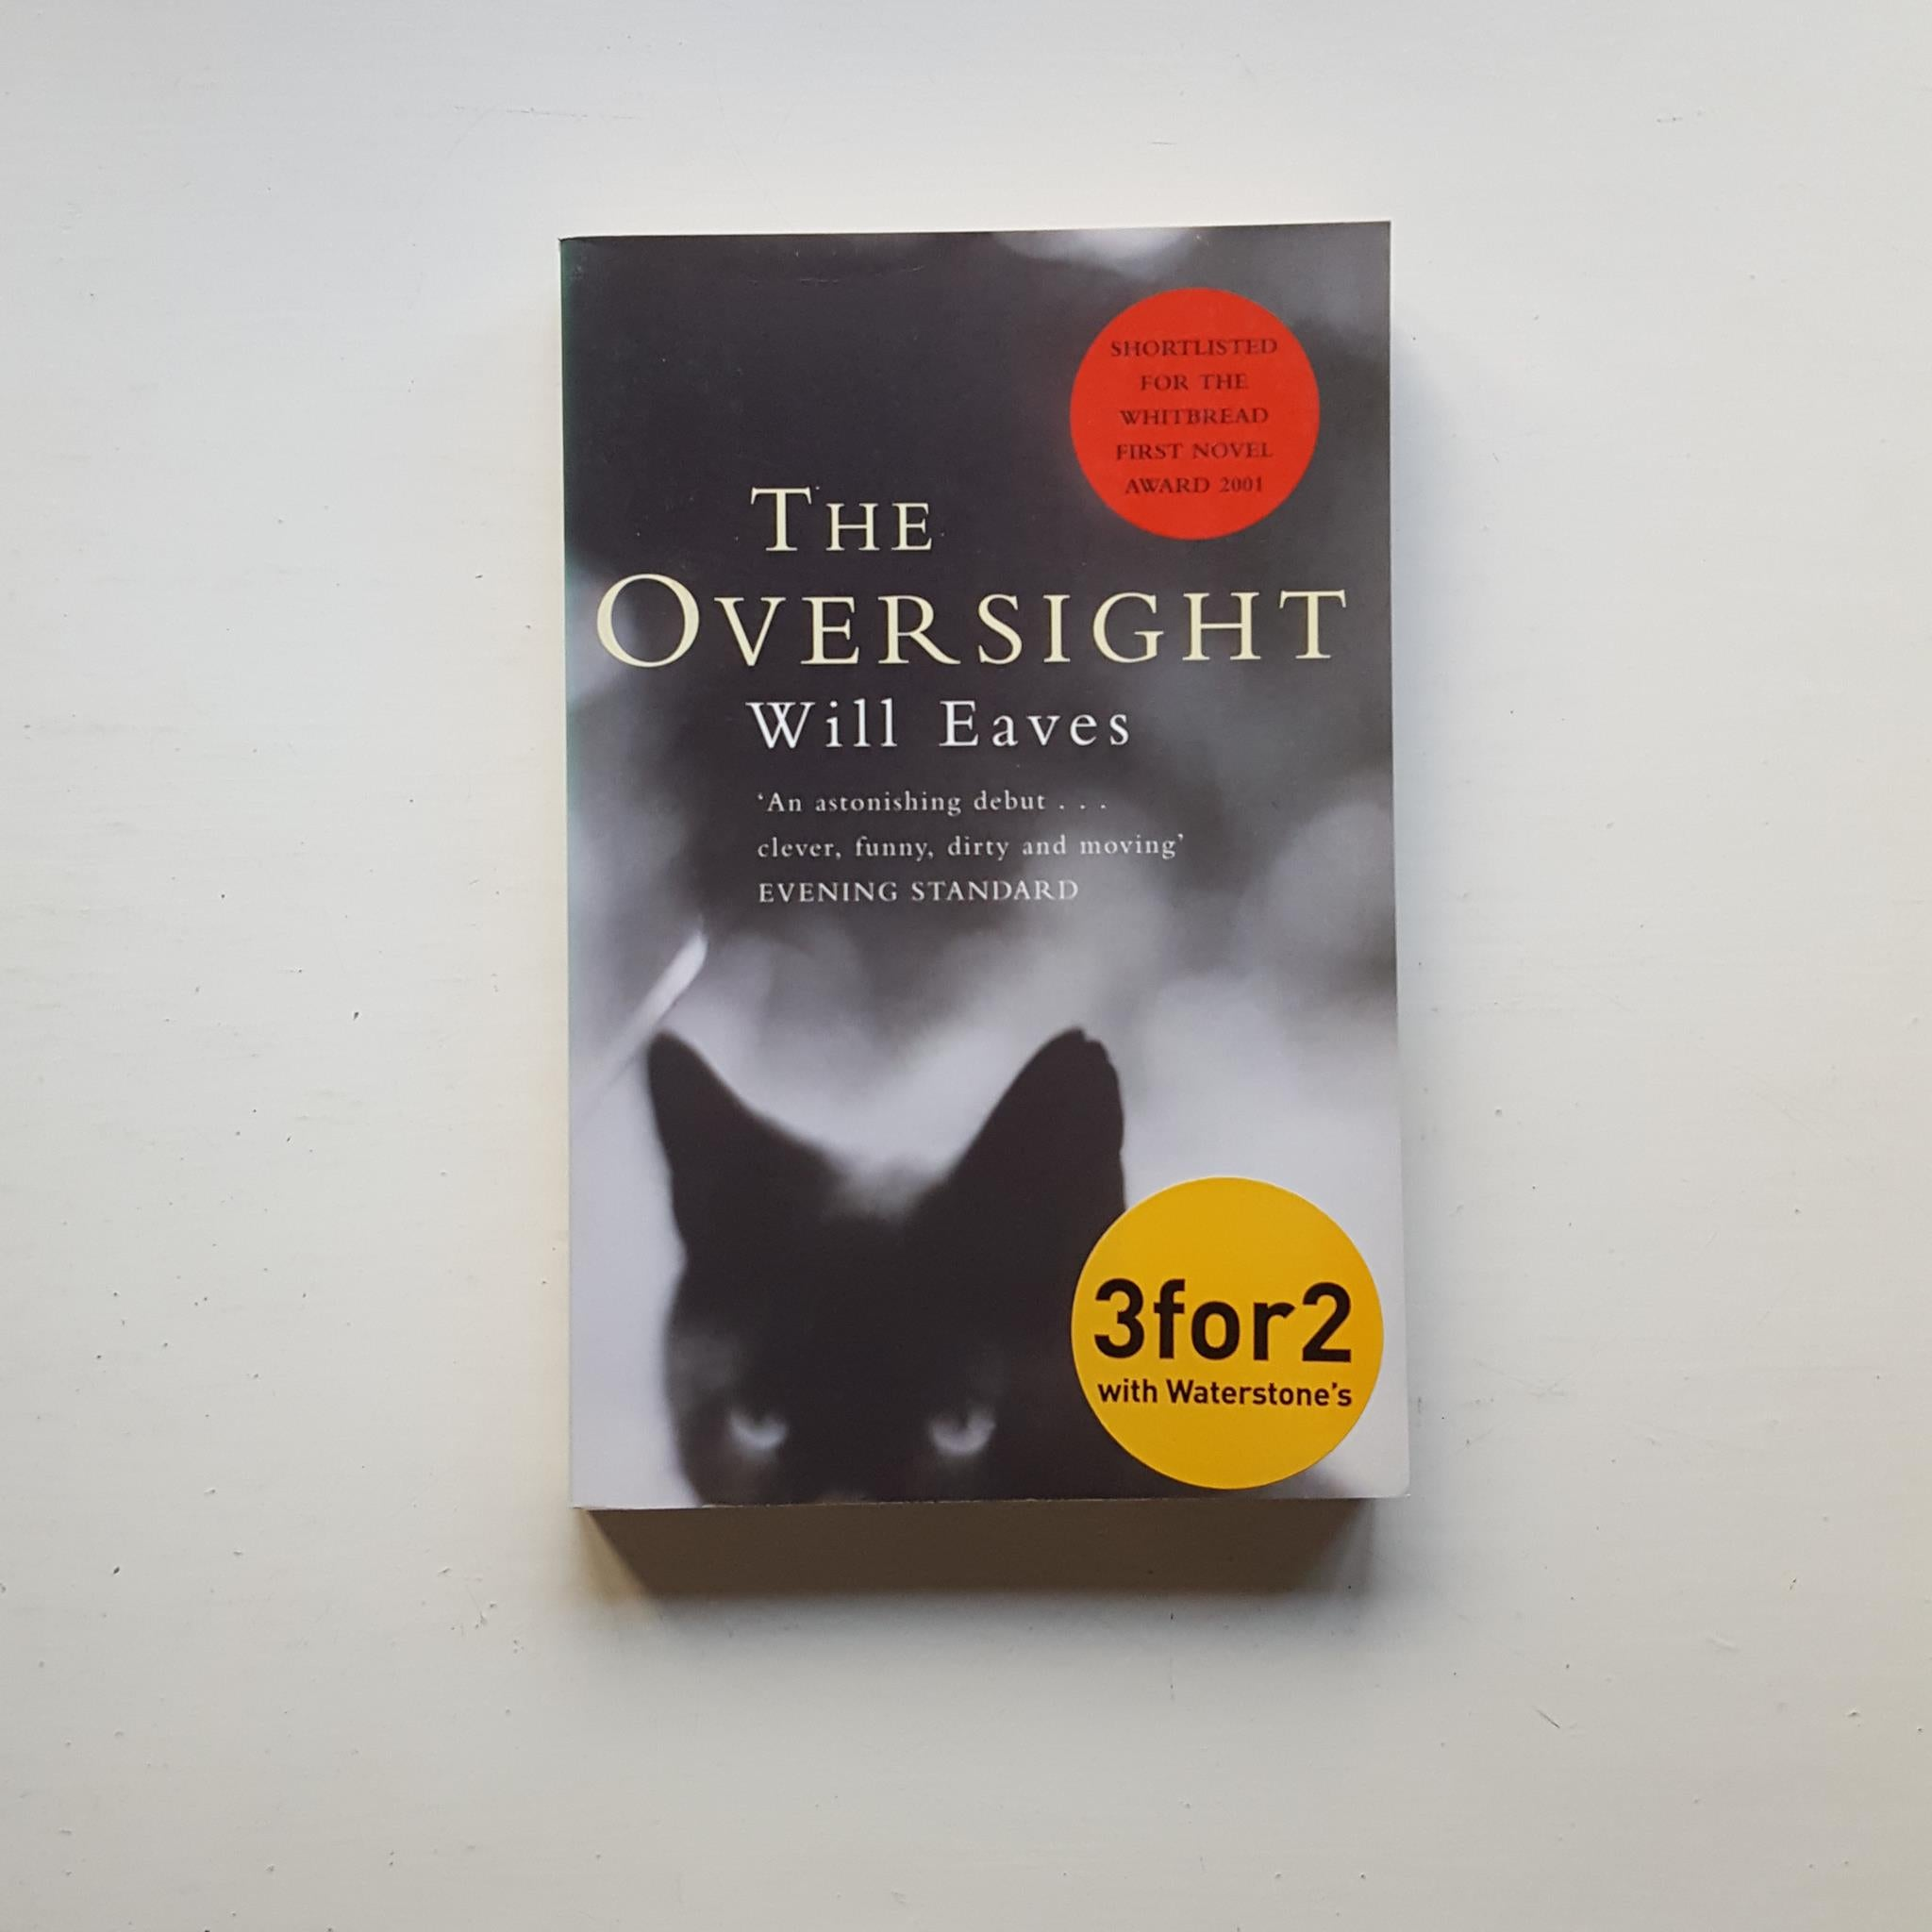 The Oversight by Will Eaves